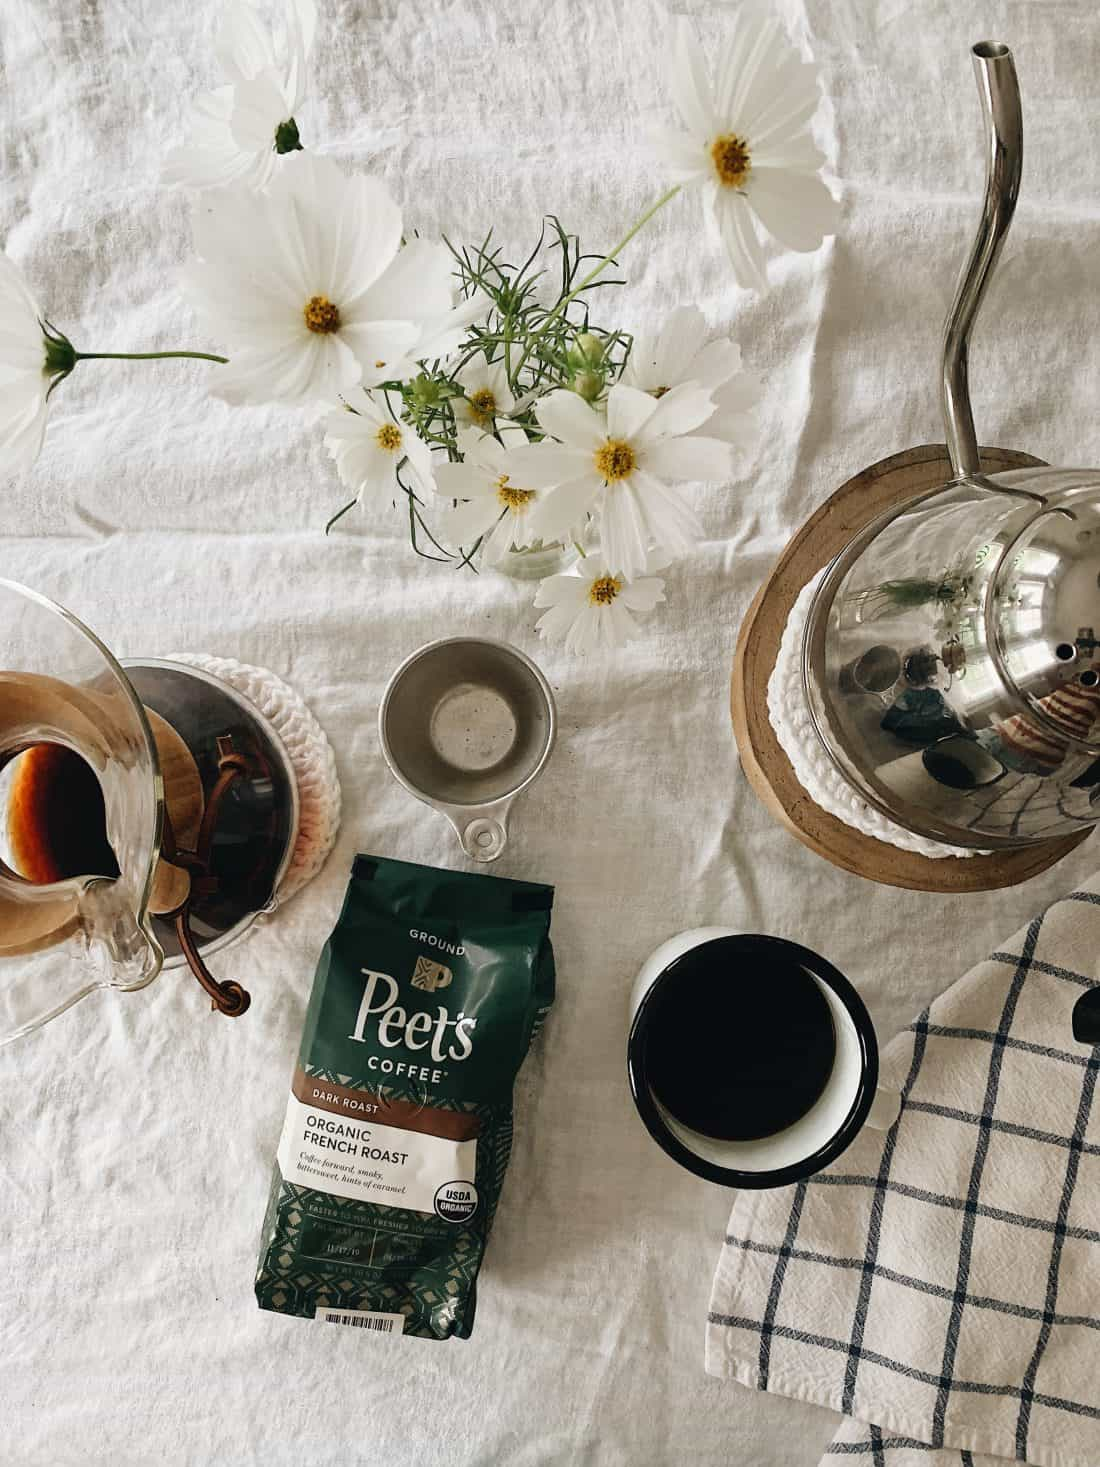 peet's organic coffee sitting on a table with a white linen tablecloth covering it.  a tea kettle and chemex pour over is sitting on the table also.